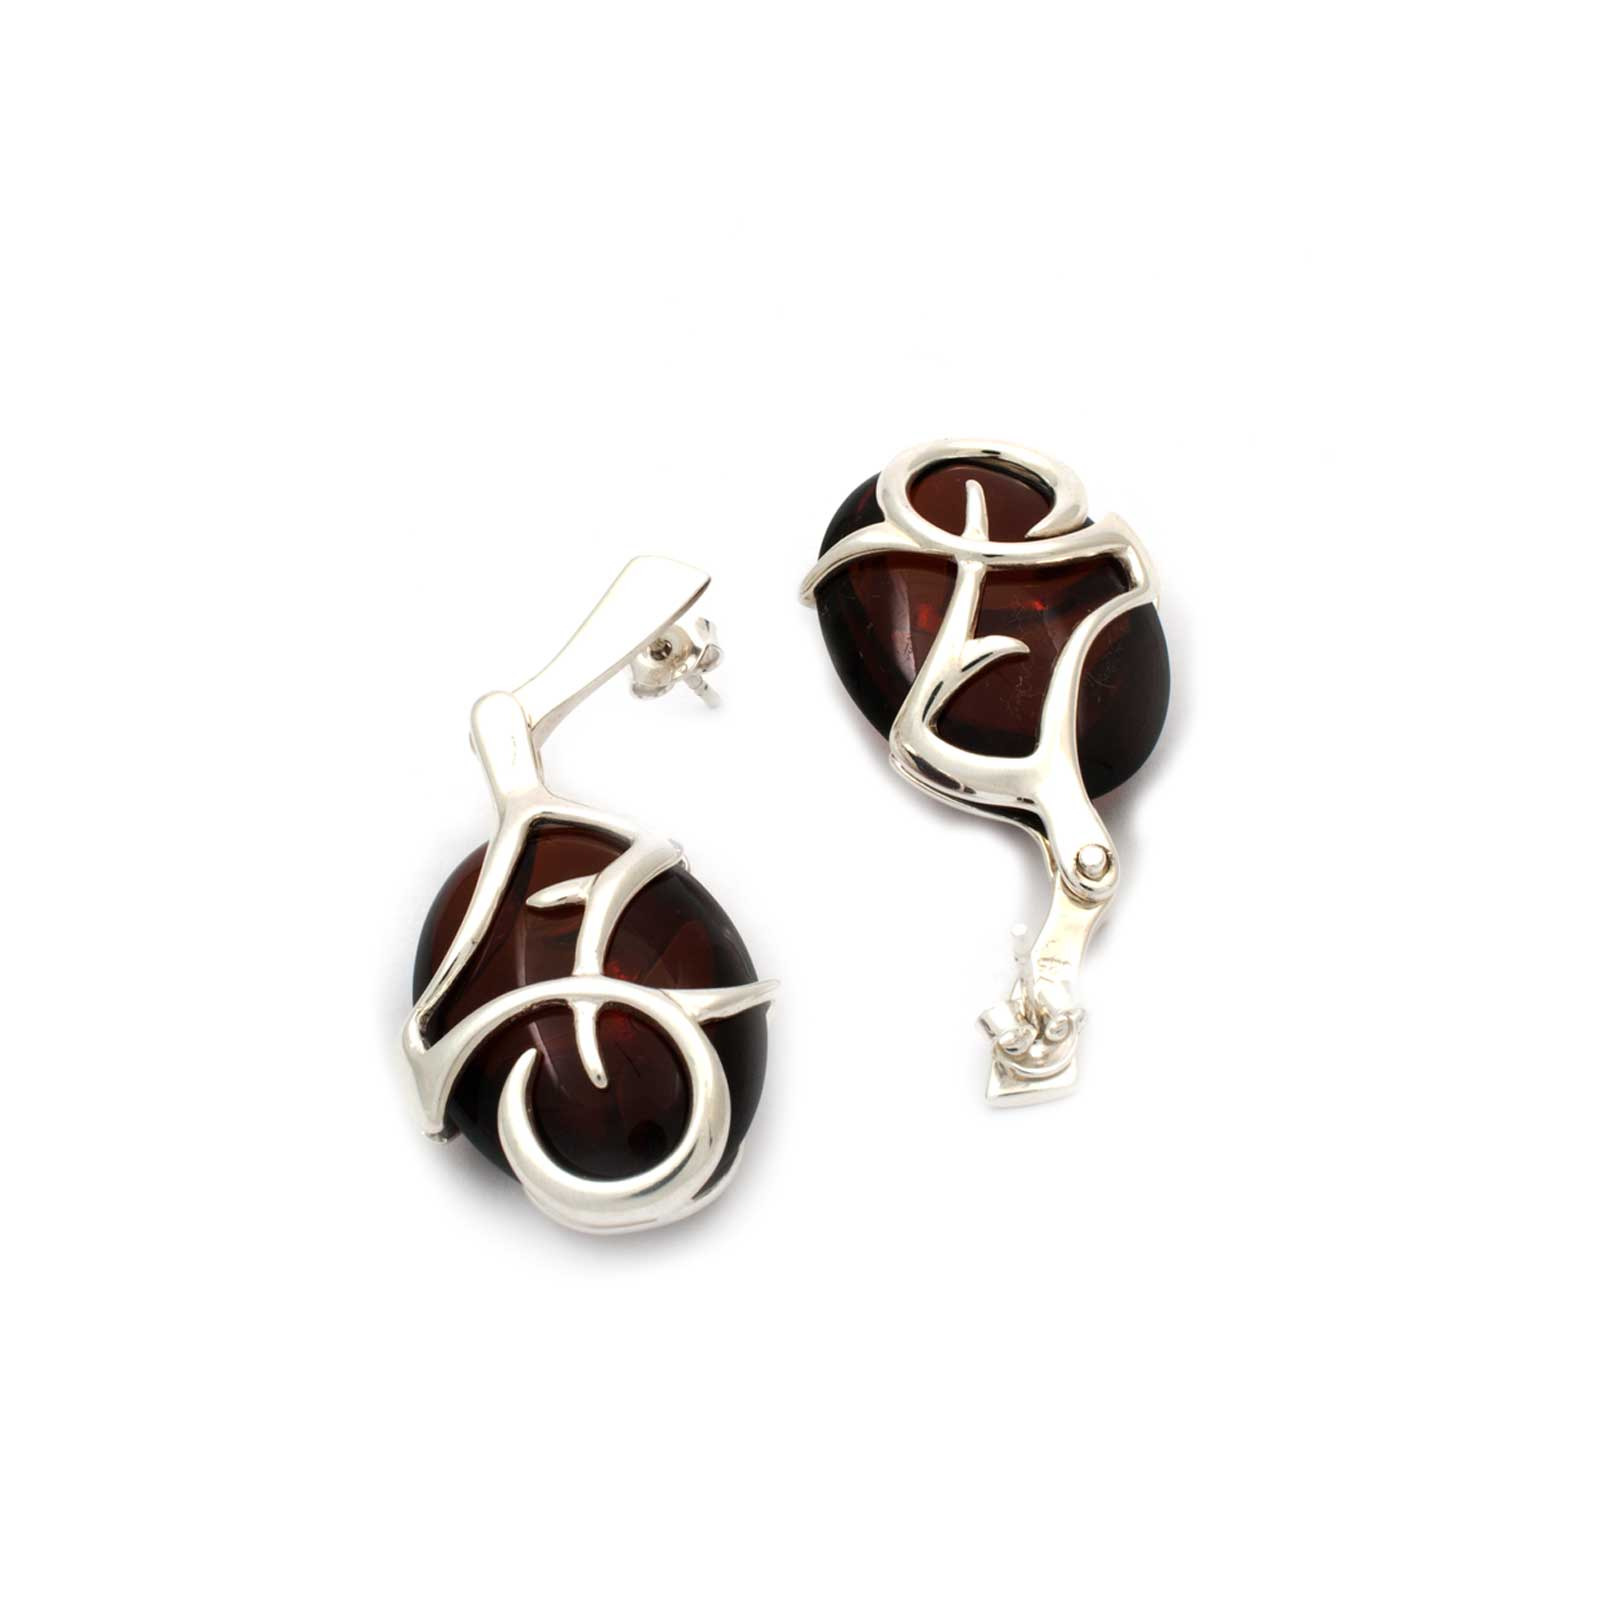 Azure Earrings in Sterling Silver and Cherry Amber